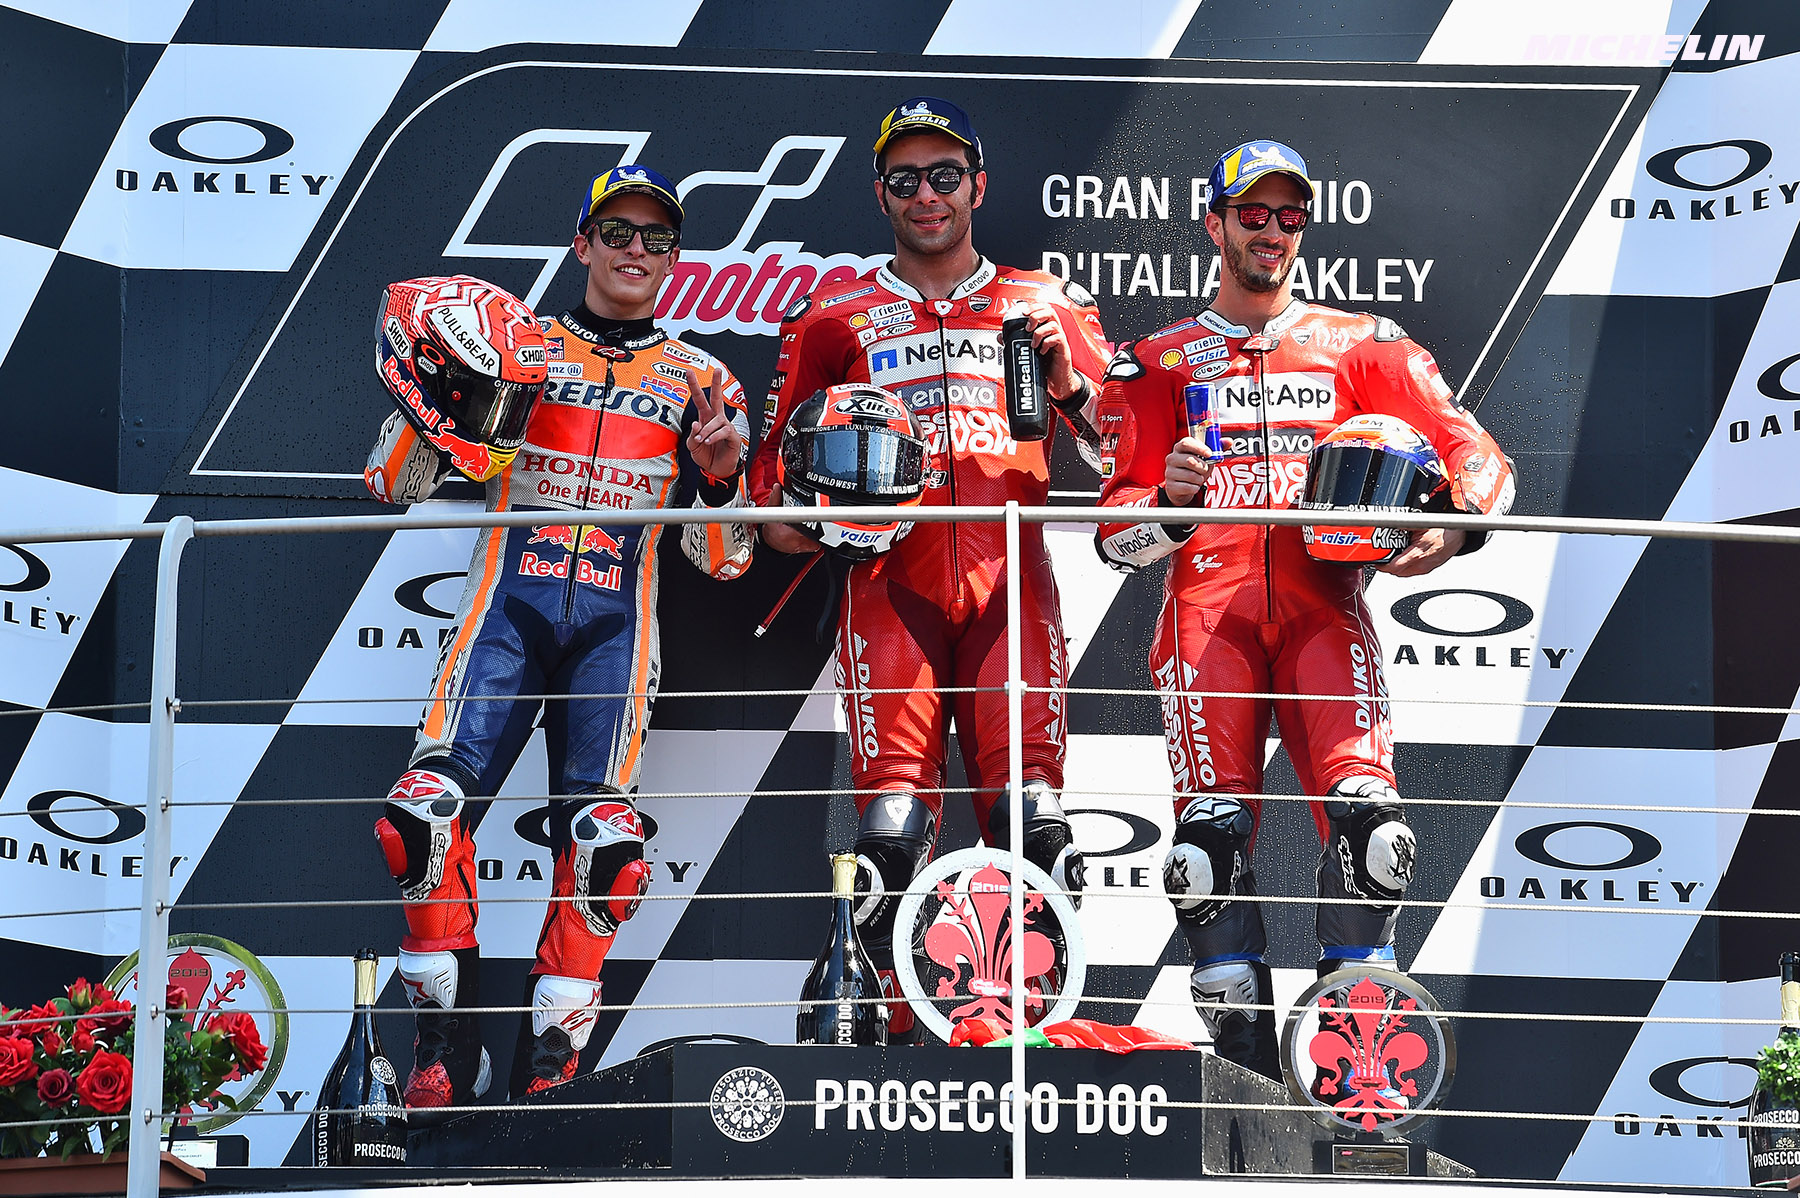 MotoGP™ - Danilo Petrucci earns maiden MotoGPTM victory at Mugello